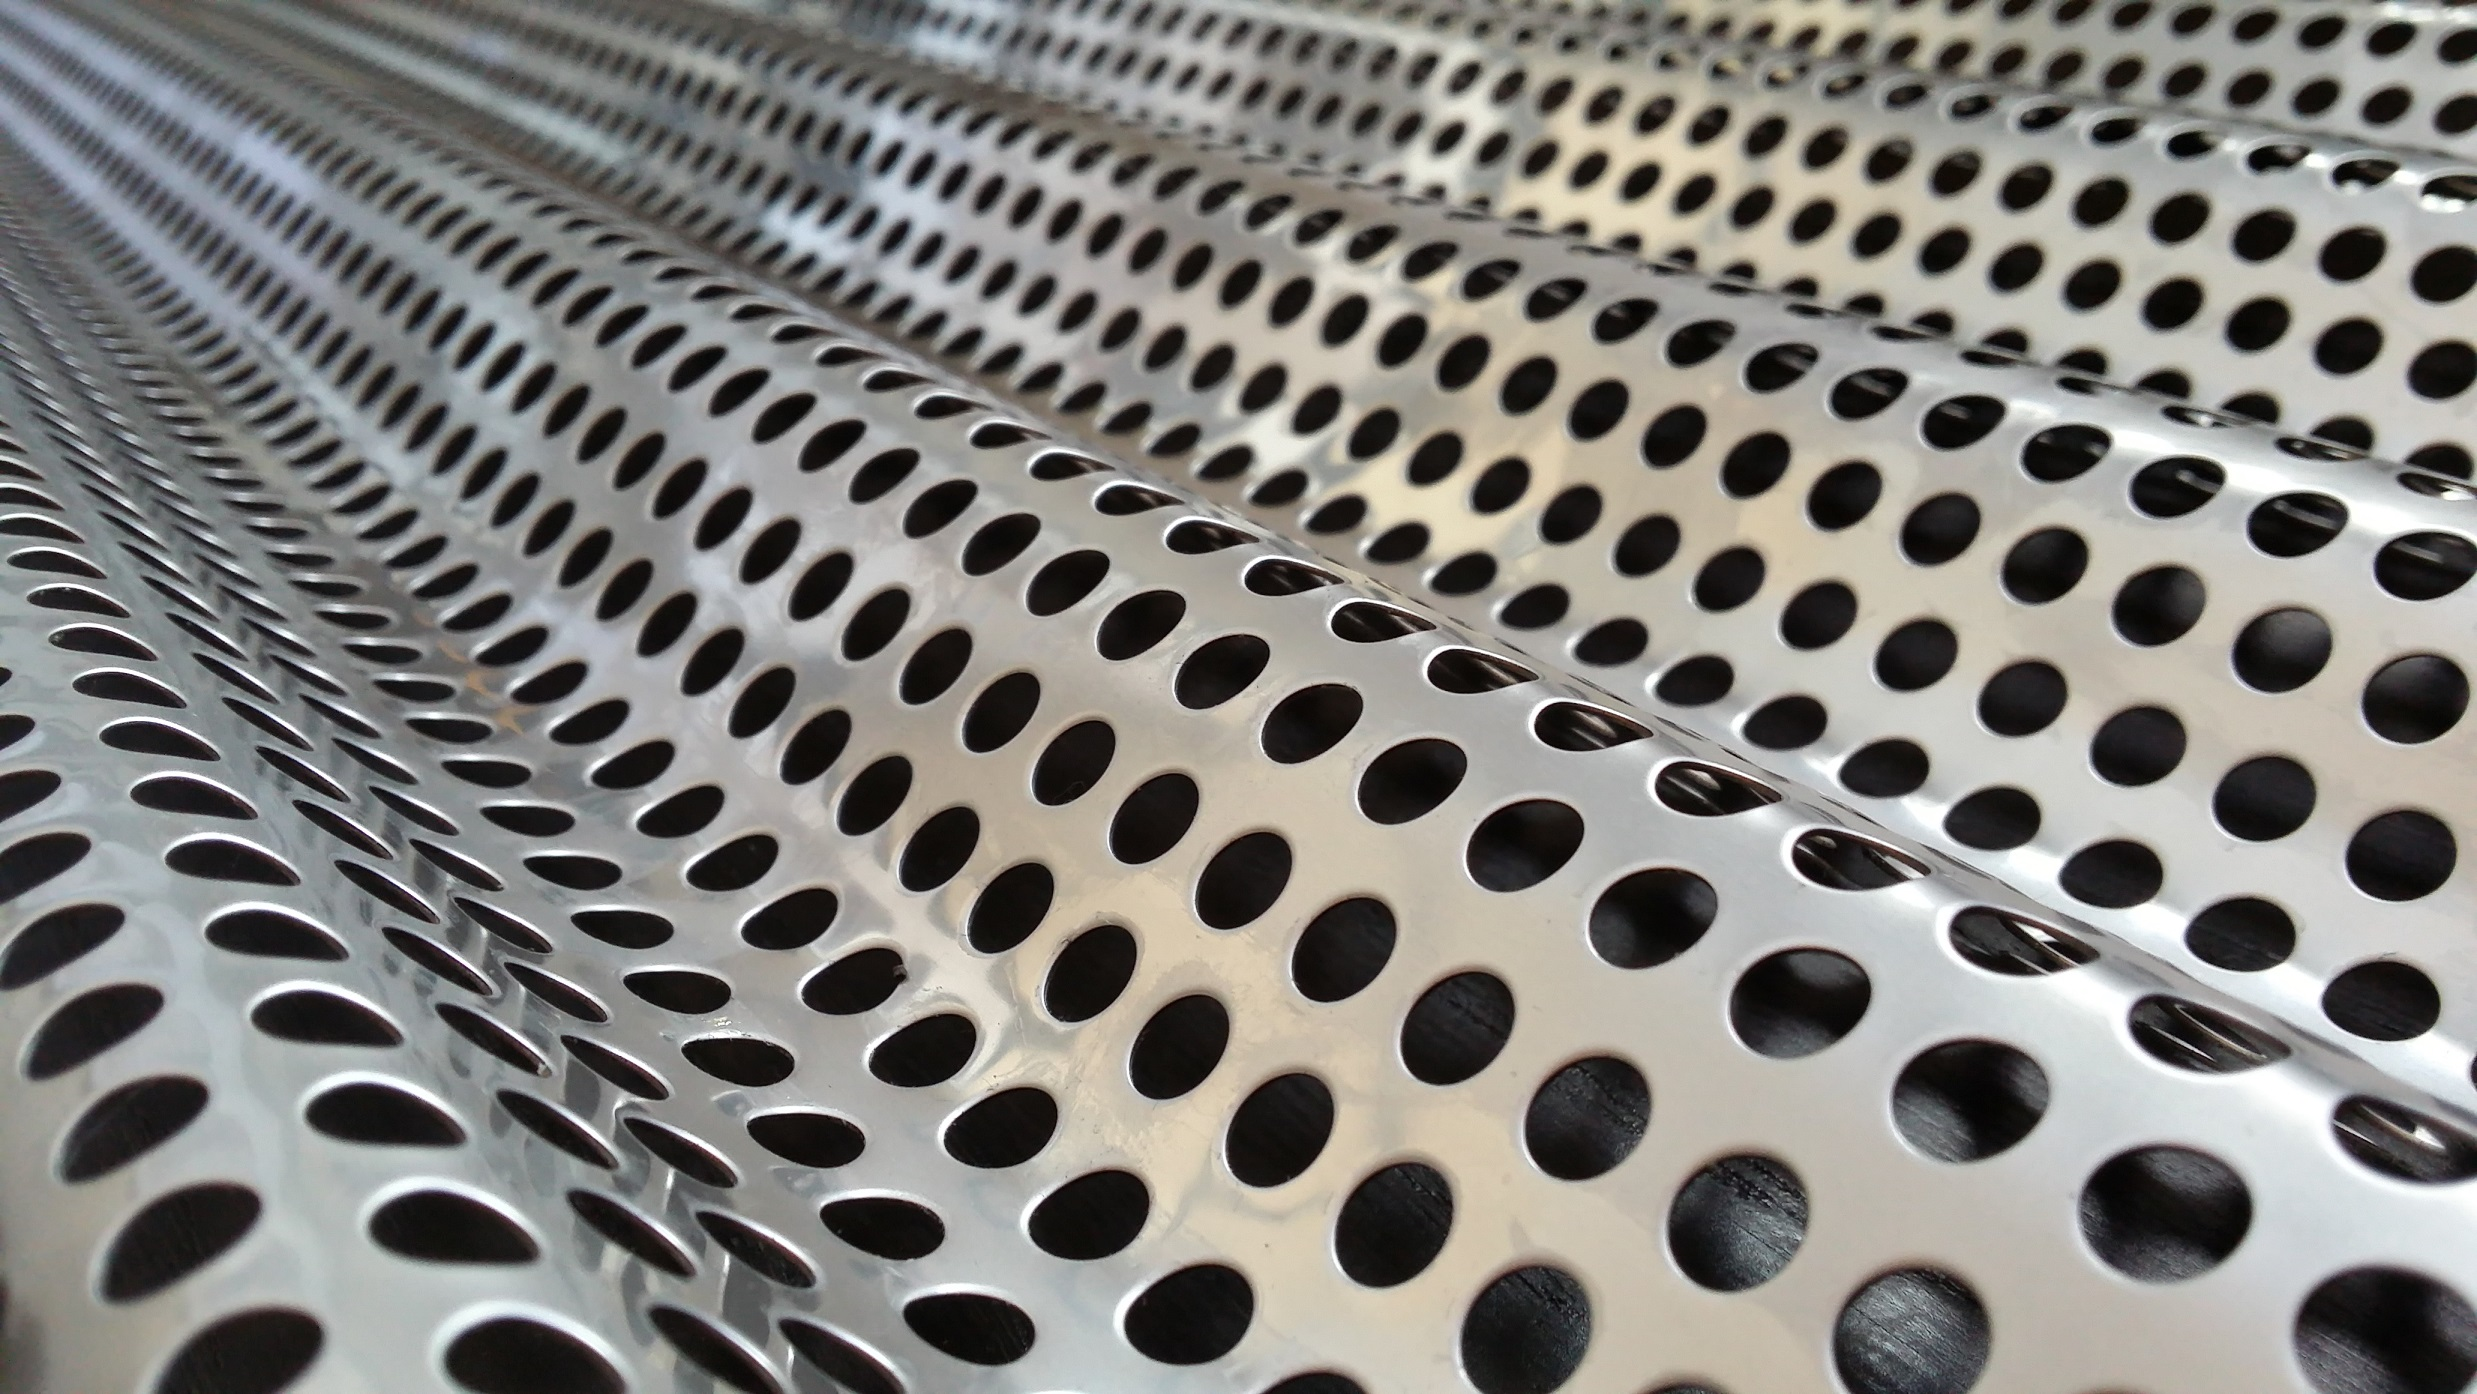 Perforated Corrugated Metal Panel Rug Designs